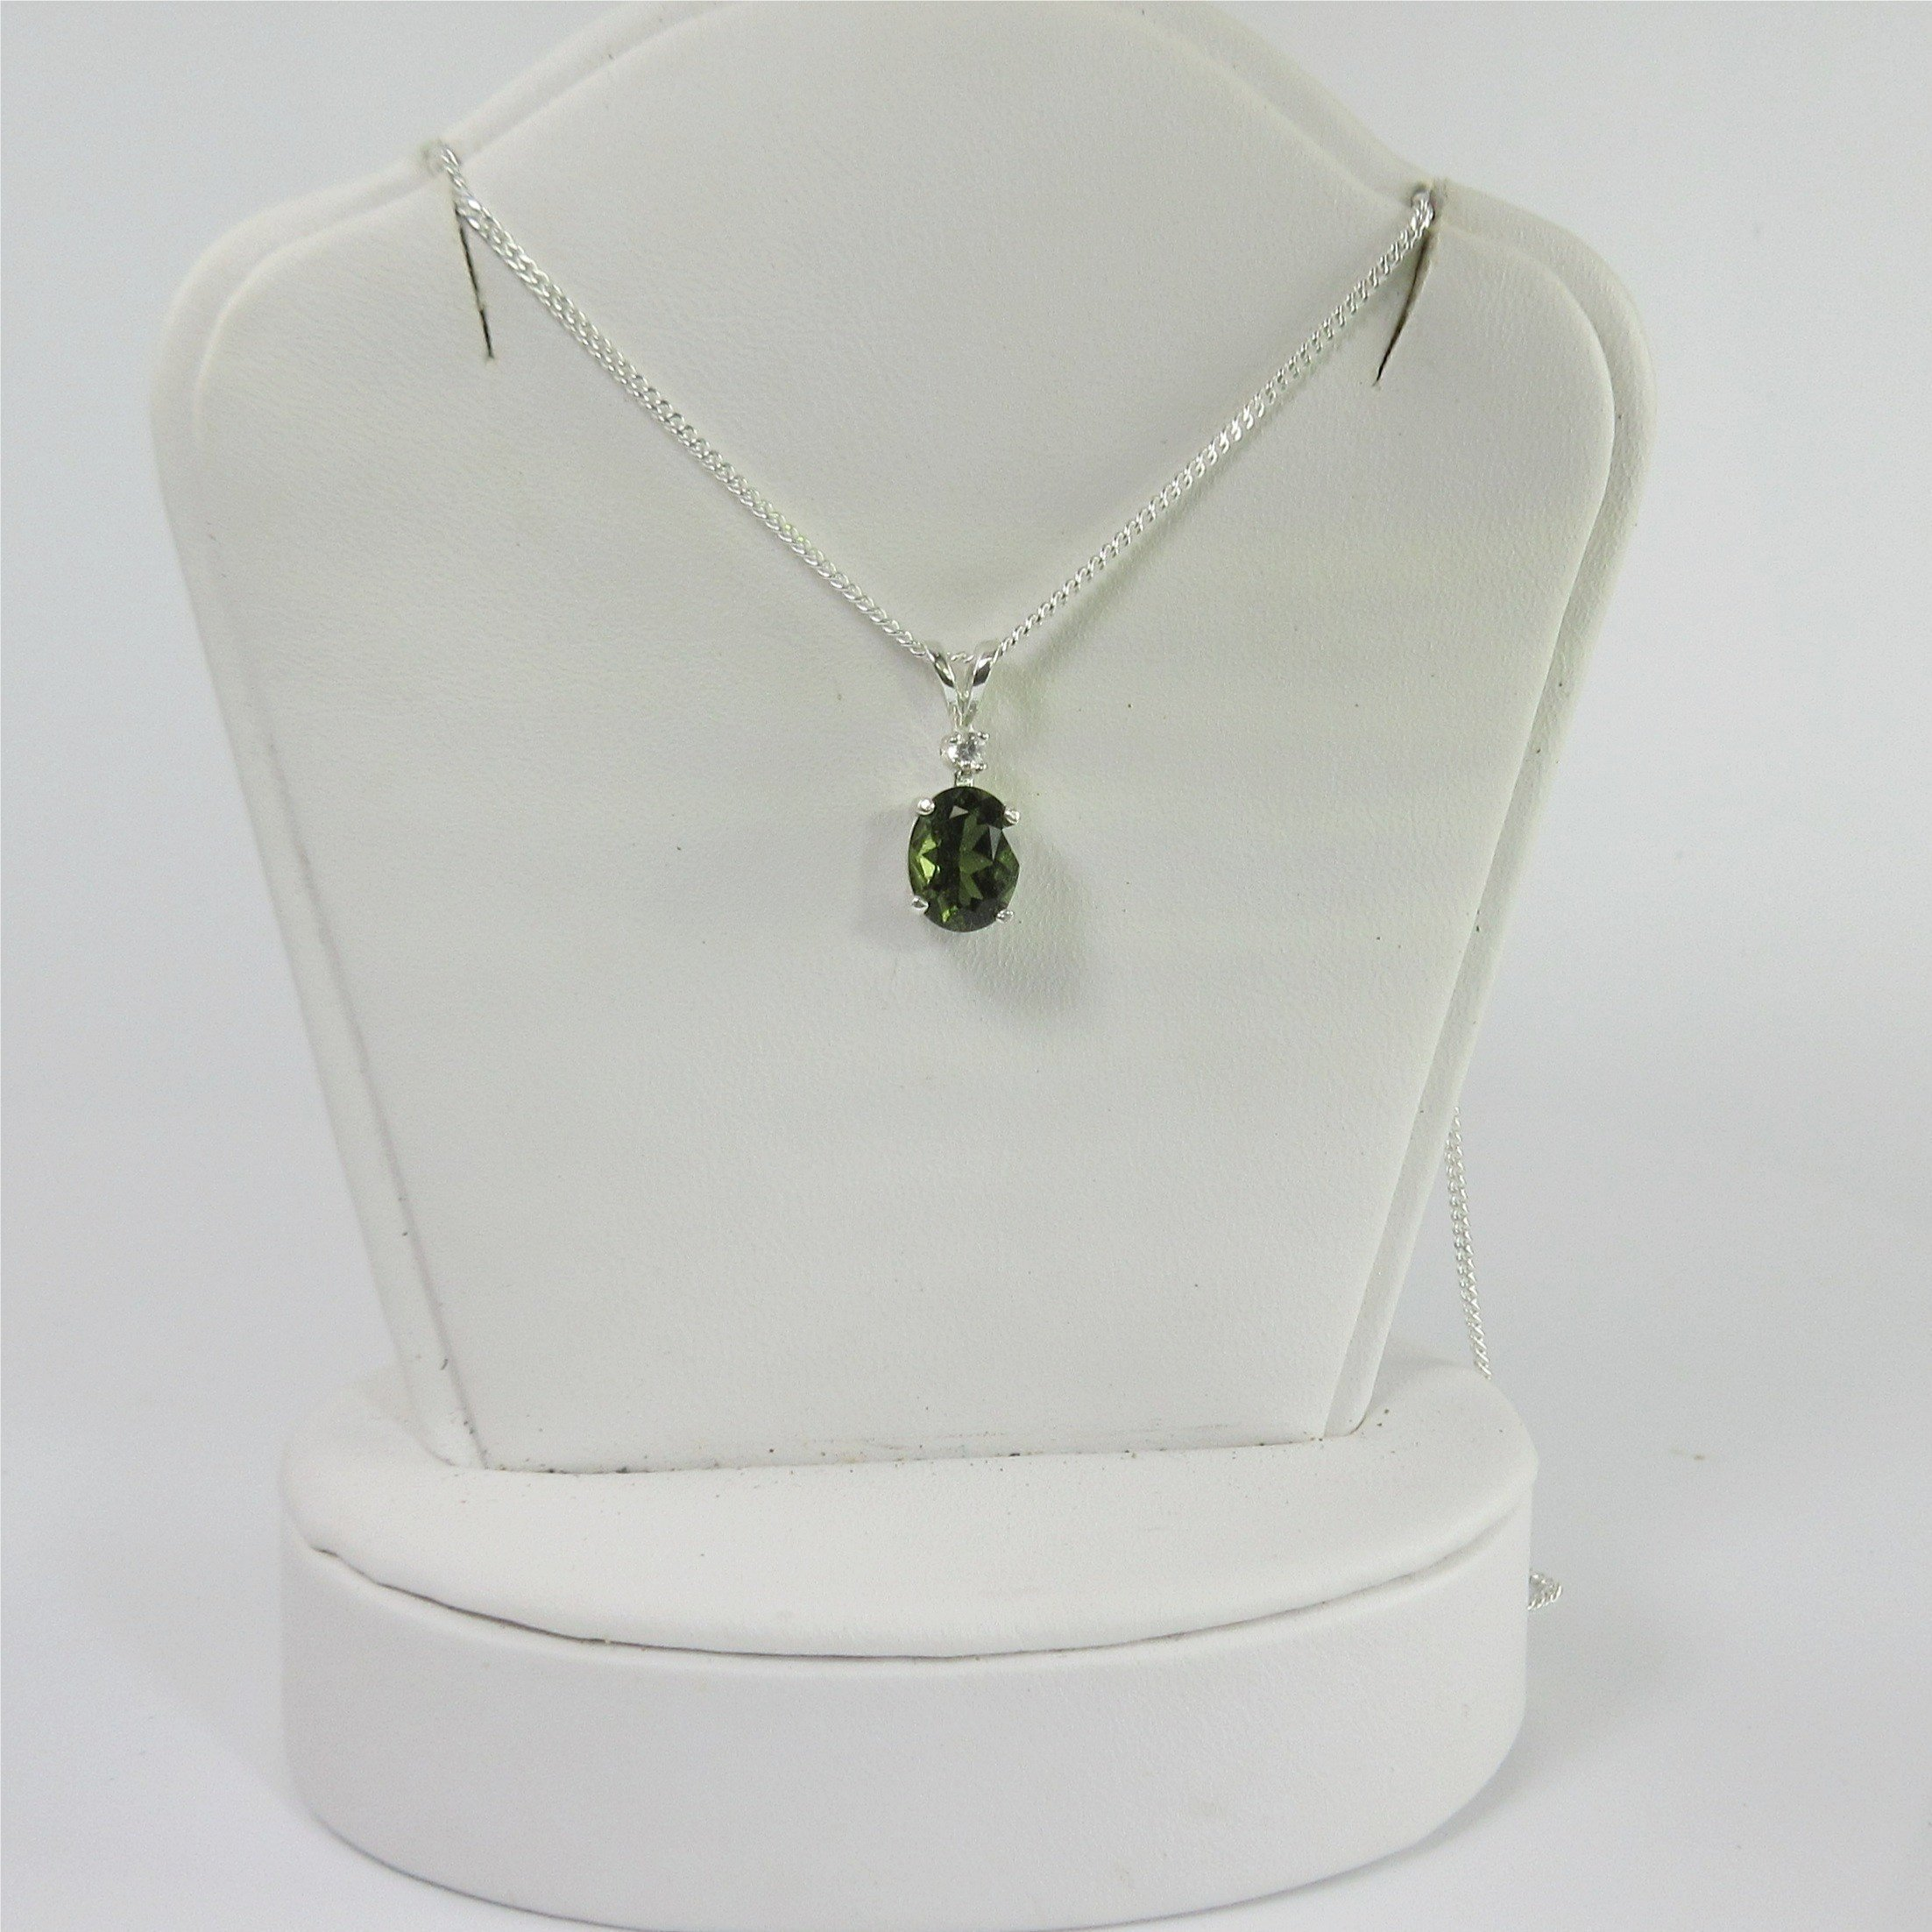 Moldavite Faceted 8x6mm Danburite Accent Sterling Silver Necklace